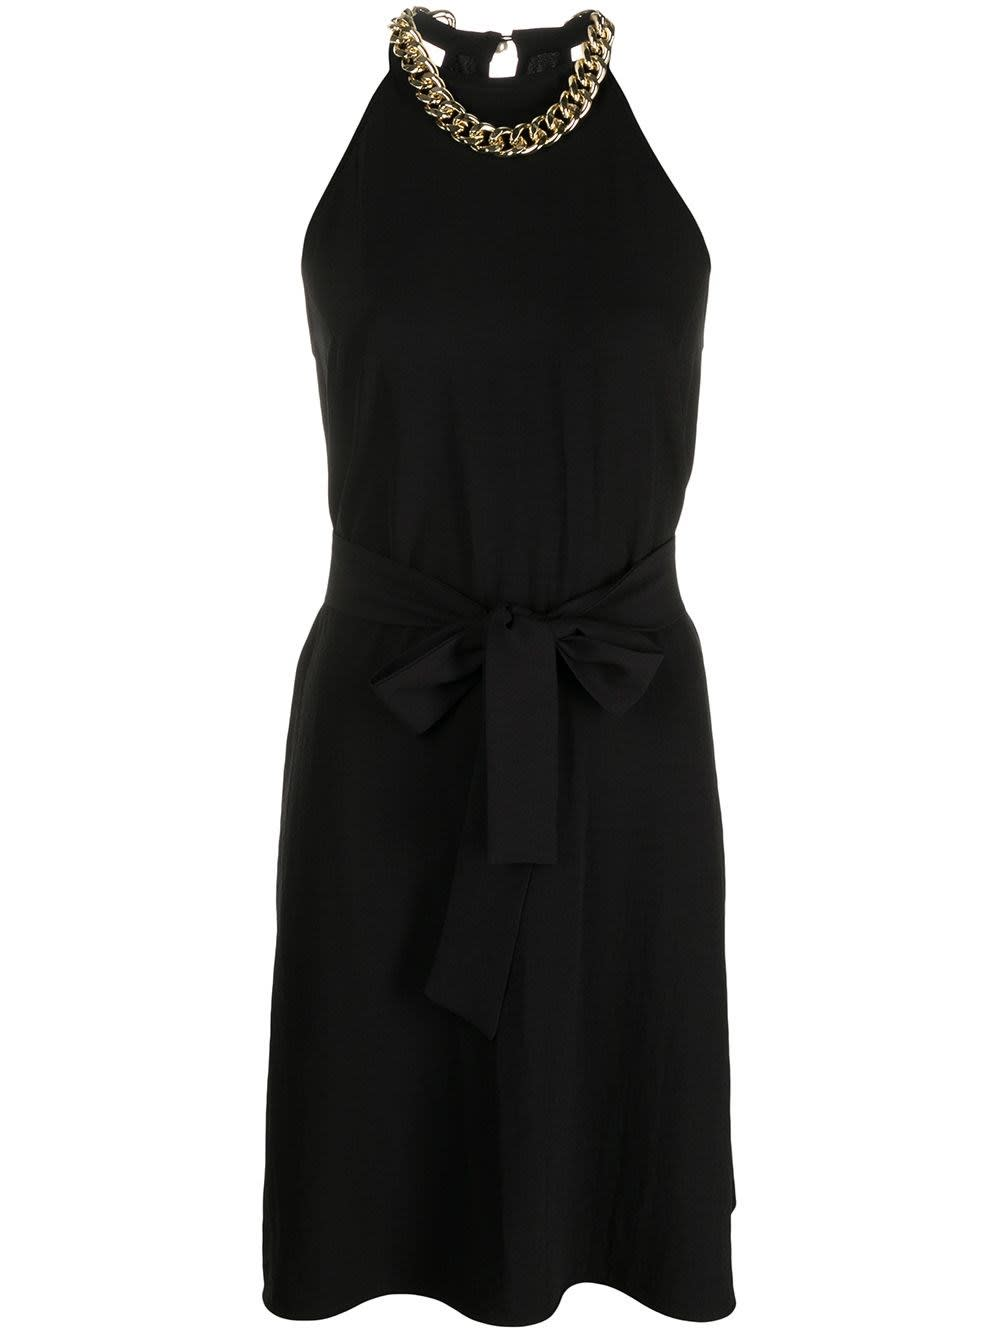 Pinko Dresses BLACK CREPE DRESS WITH CHAIN NECKLACE